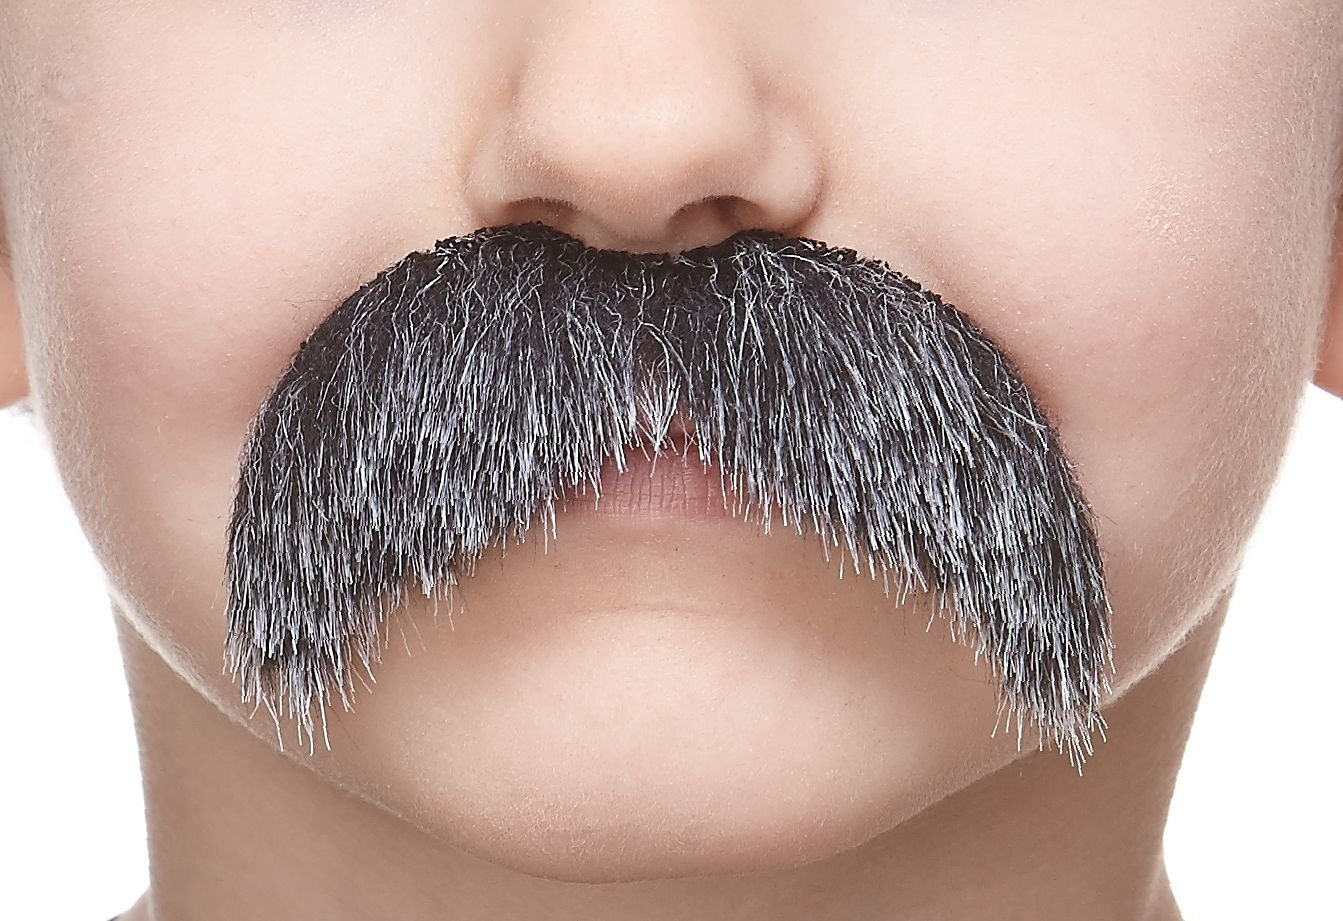 Mustaches Fake Mustache, Self Adhesive, Novelty, Small Walrus False Facial Hair, Costume Accessory for Kids, Salt and Pepper Color